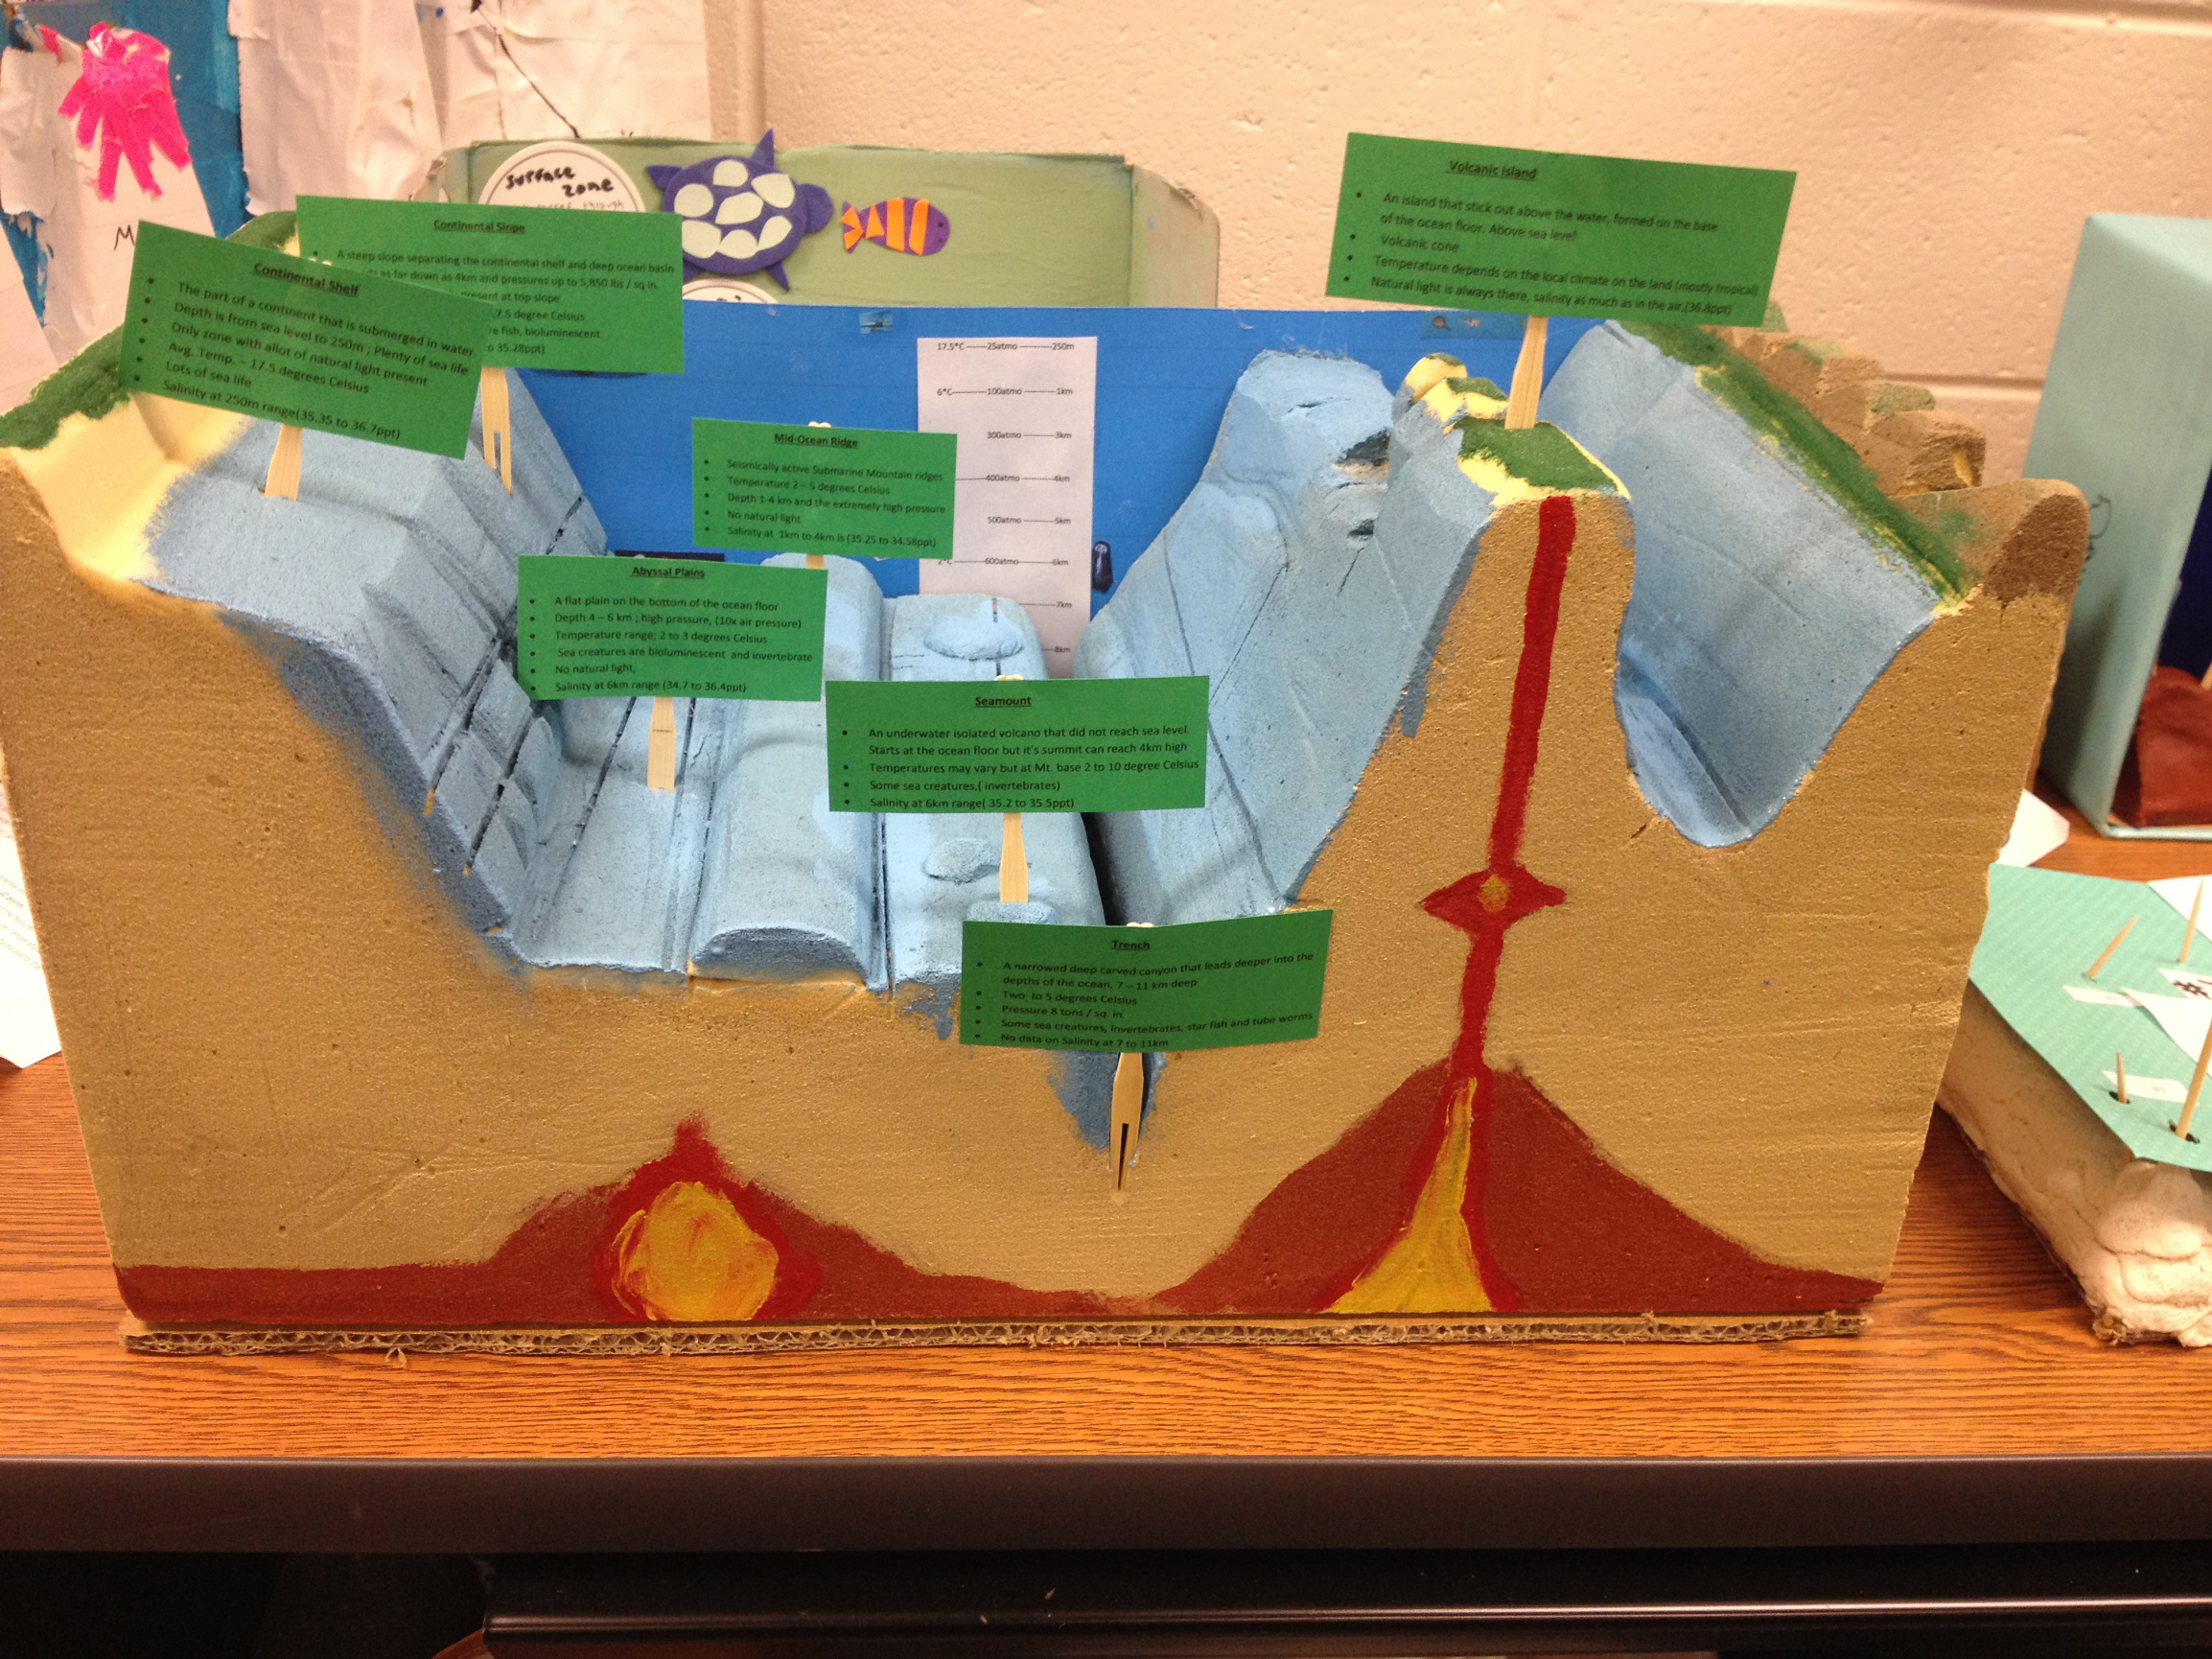 Ocean Floor Model Project Ideas http://mrswilsonscience.com/stretchingforward/ocean-floor-models/